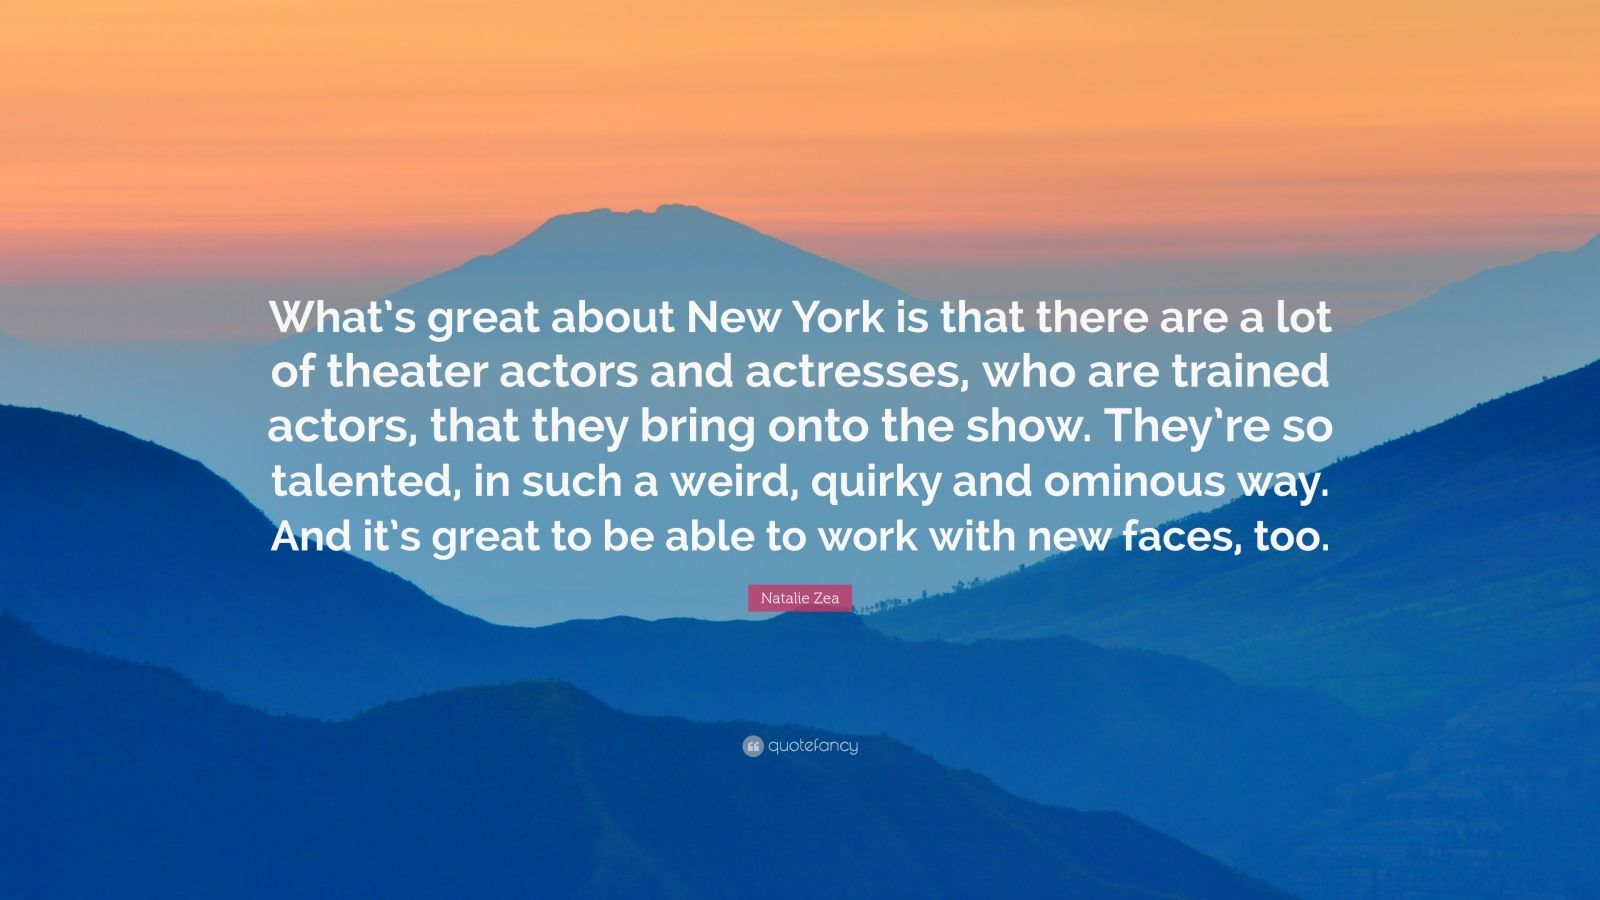 """Natalie Zea Quote: """"What's great about New York is that there are a lot of theater actors and actresses, who are trained actors, that they bring onto the show. They're so talented, in such a weird, quirky and ominous way. And it's great to be able to work with new faces, too."""""""